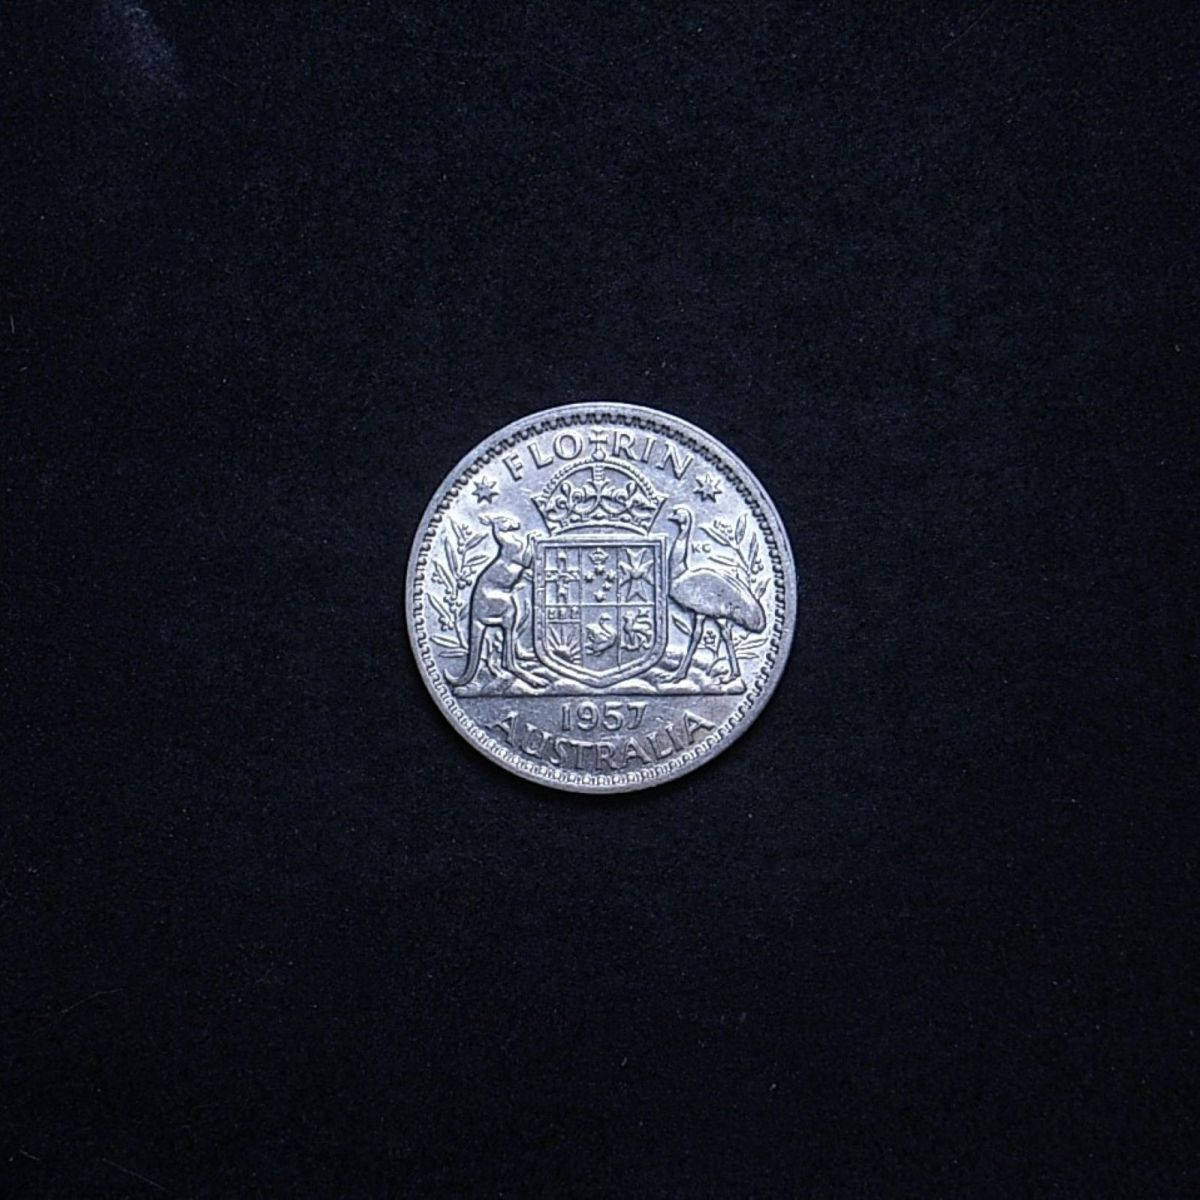 Aus Florin 1957 reverse showing overall appearance